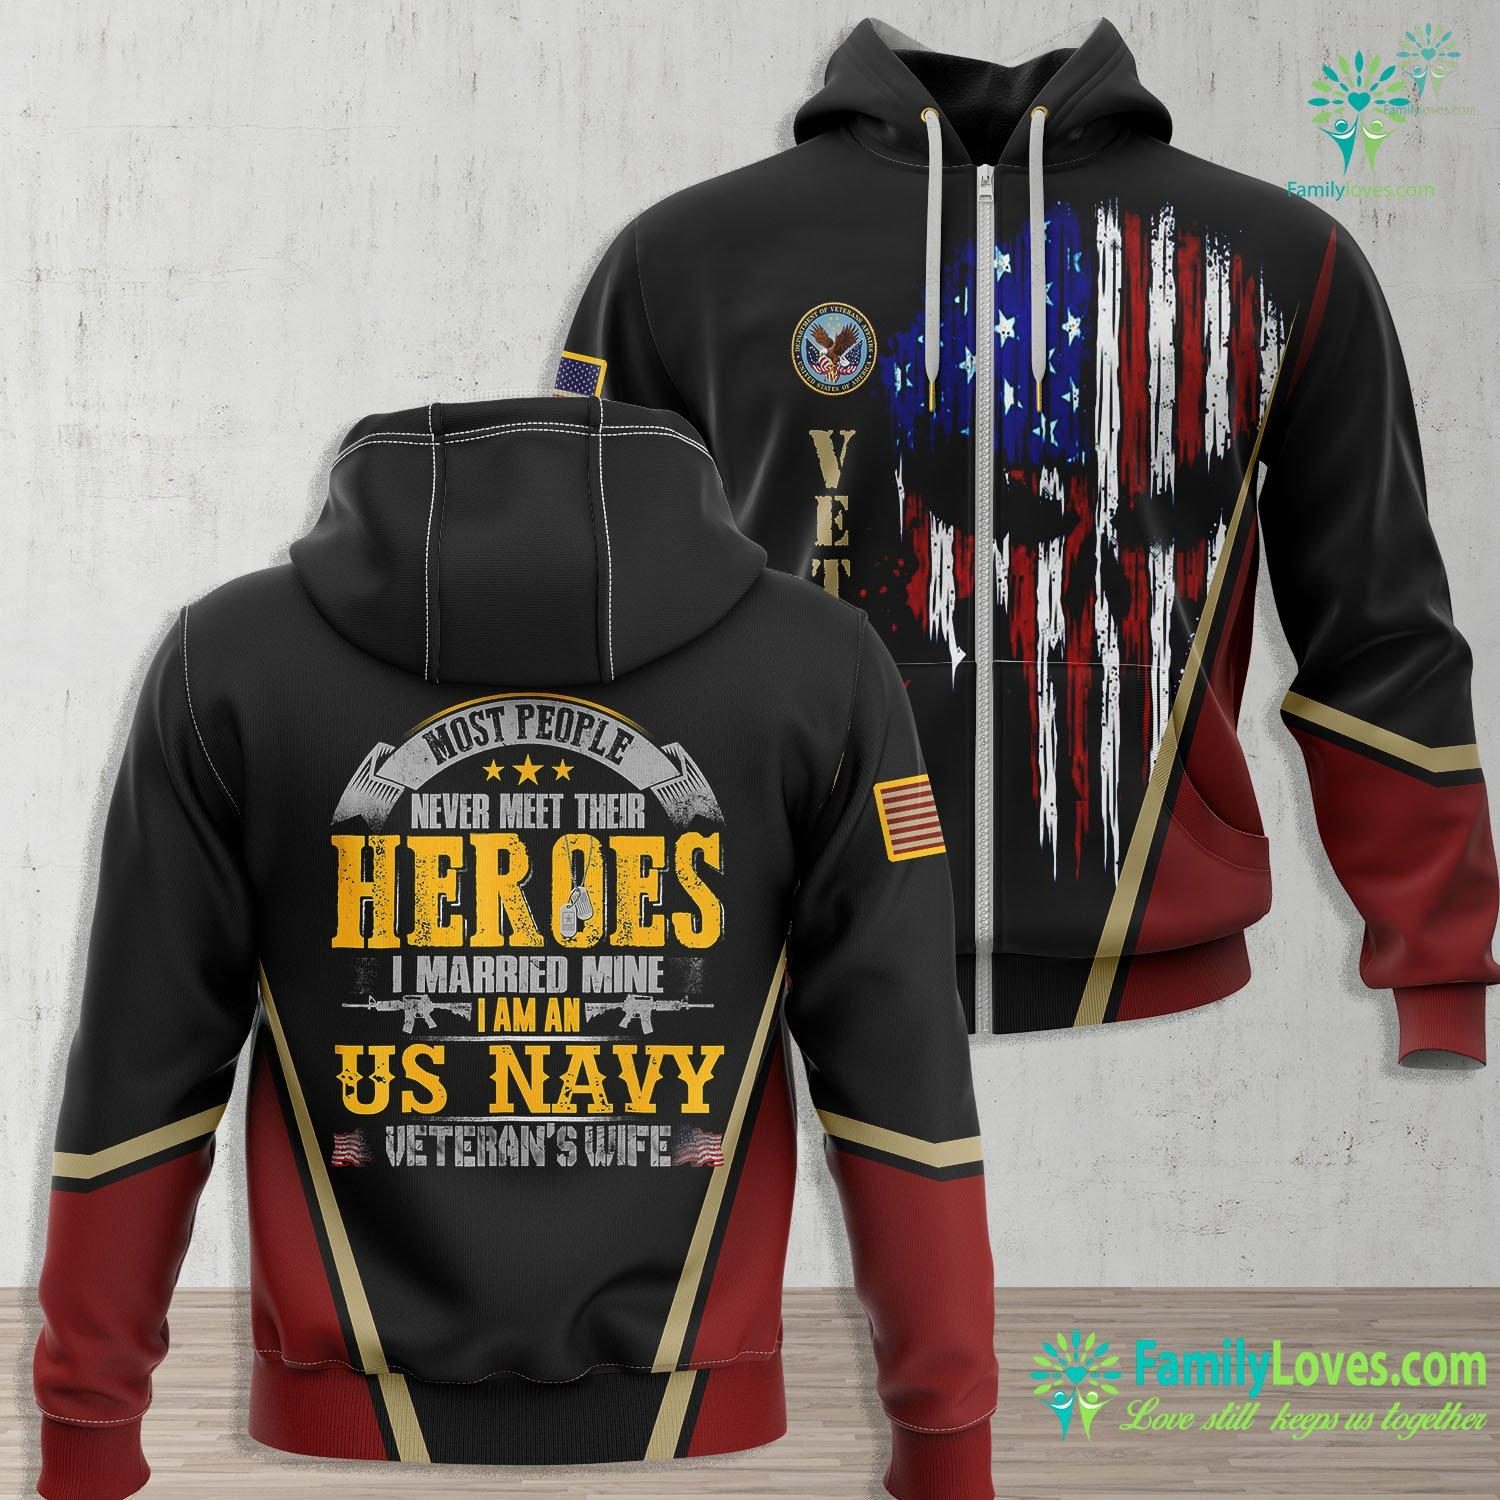 Us Navy Under Armour I Was Raised By My Heros Im An Us Navy Veterans Wife Tee Navy Zip-up Hoodie All Over Print Familyloves.com